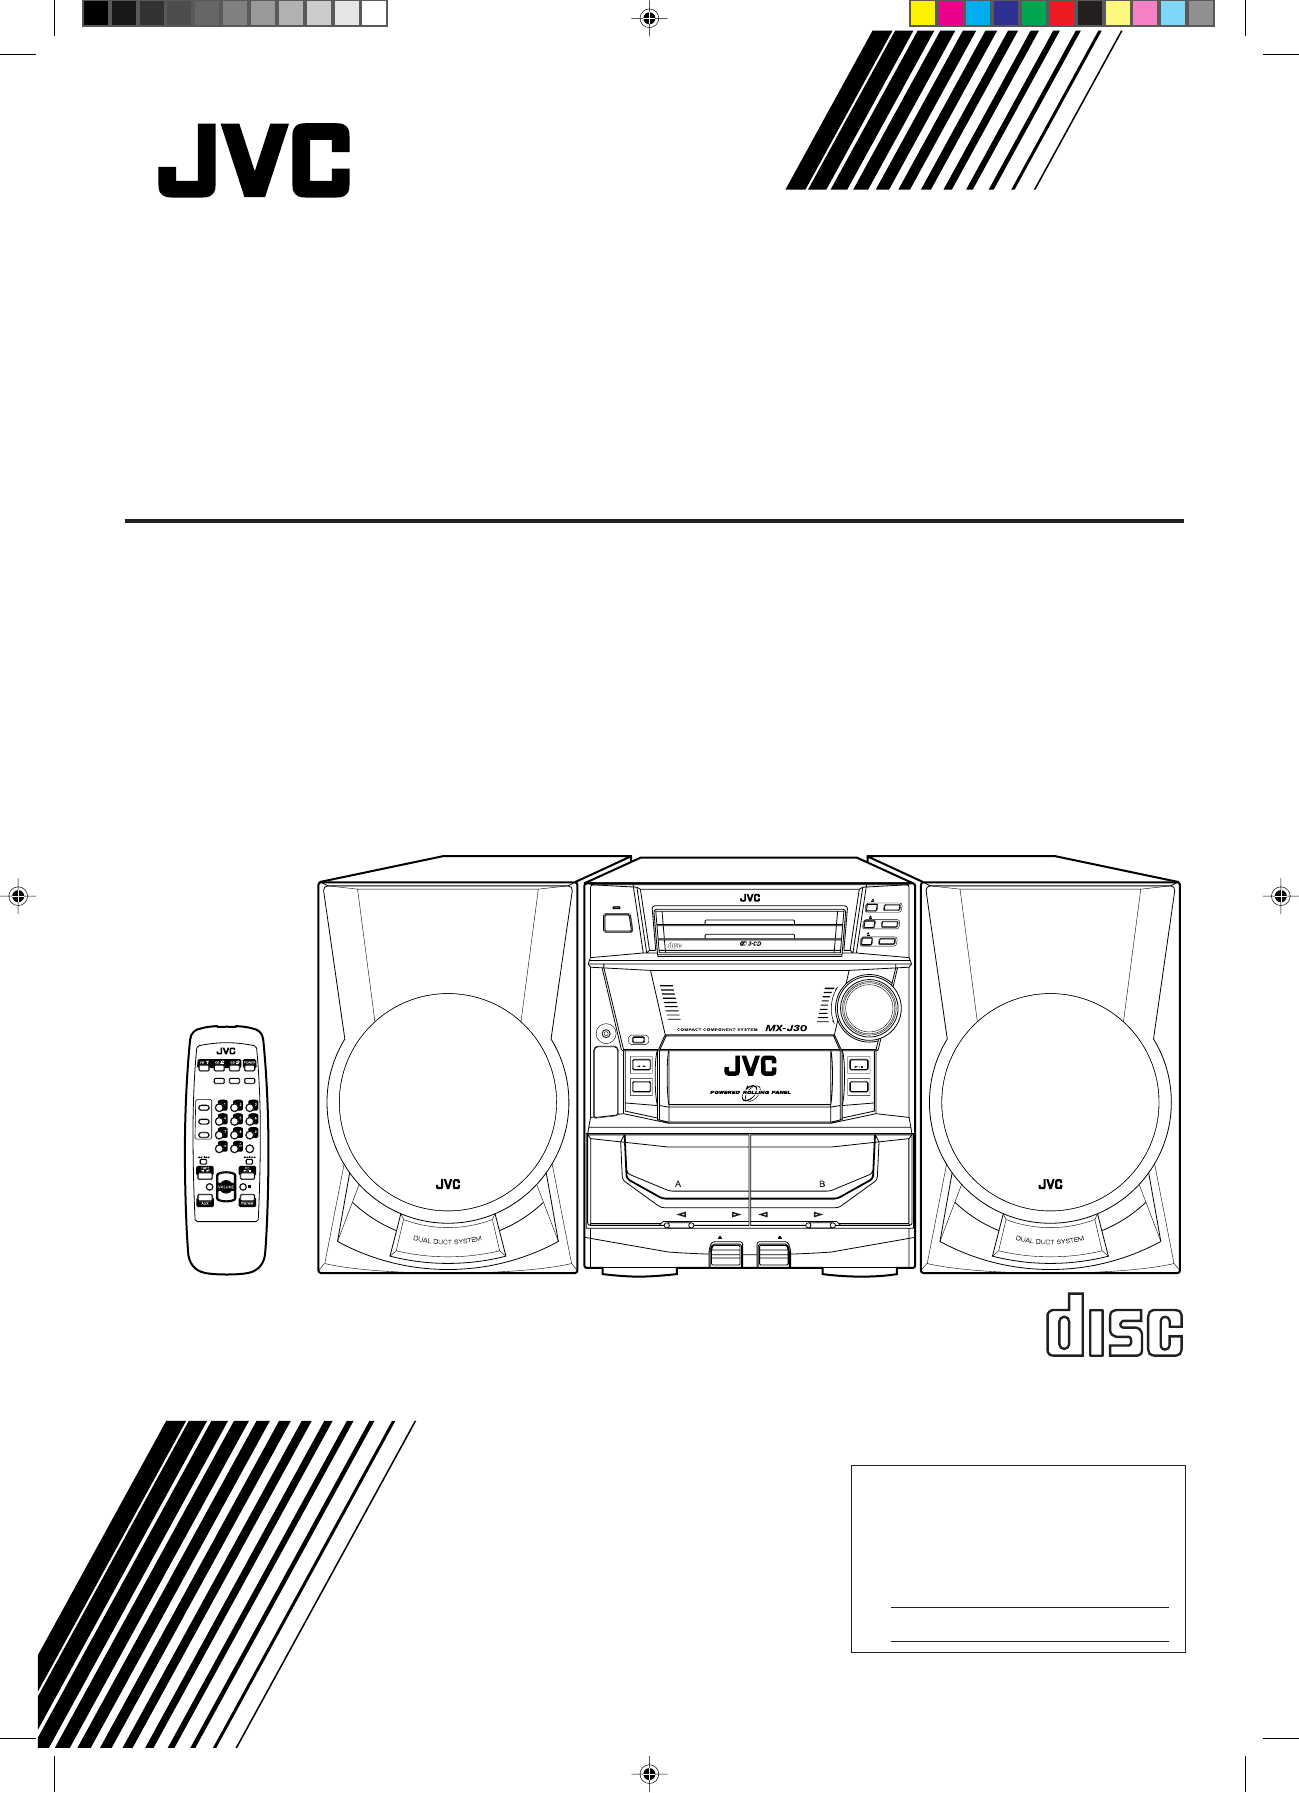 Jvc Stereo System Mx J30 User Guide